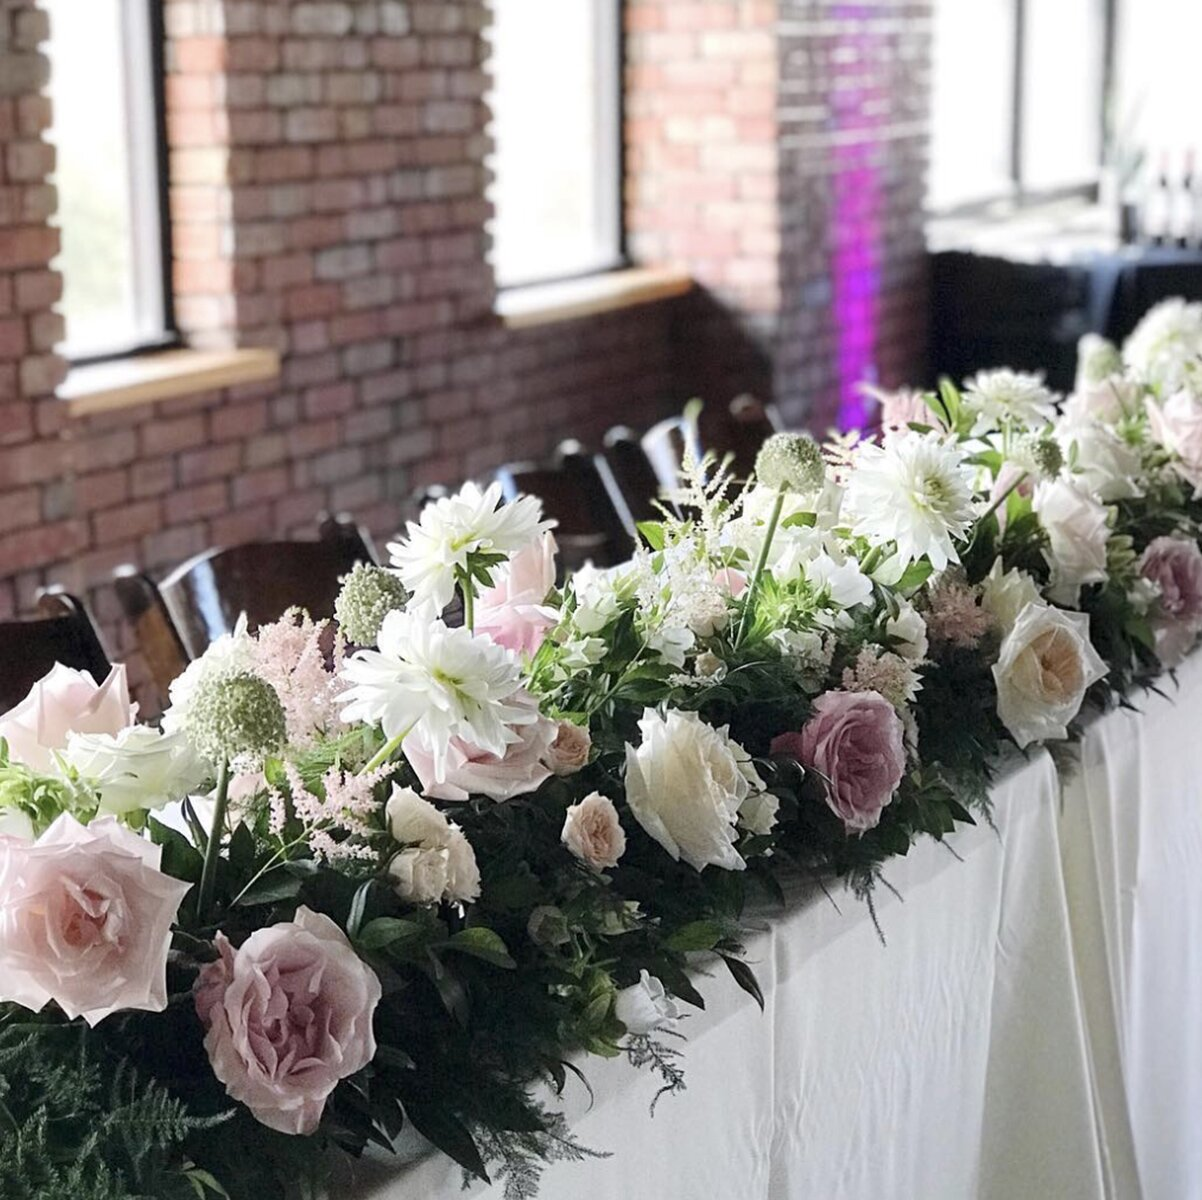 wedding-flowers-florist-sydney-bridal-table-packages-prices-affordable-cheap